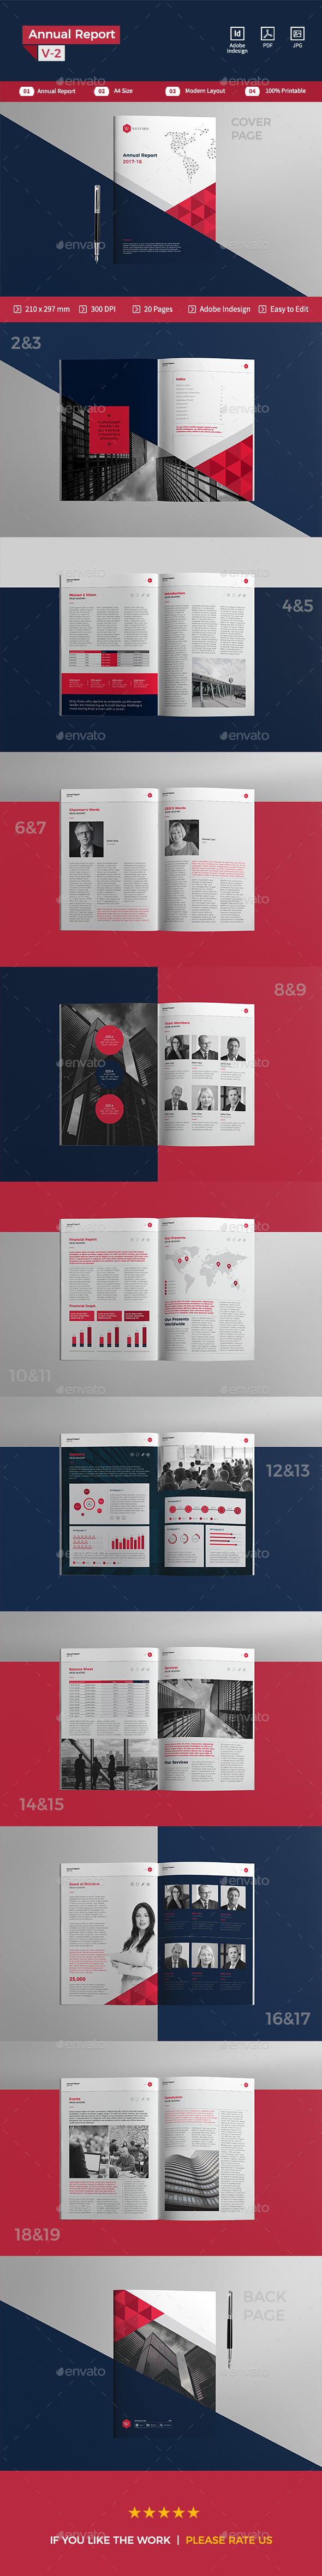 Annual Report - Corporate Flyers